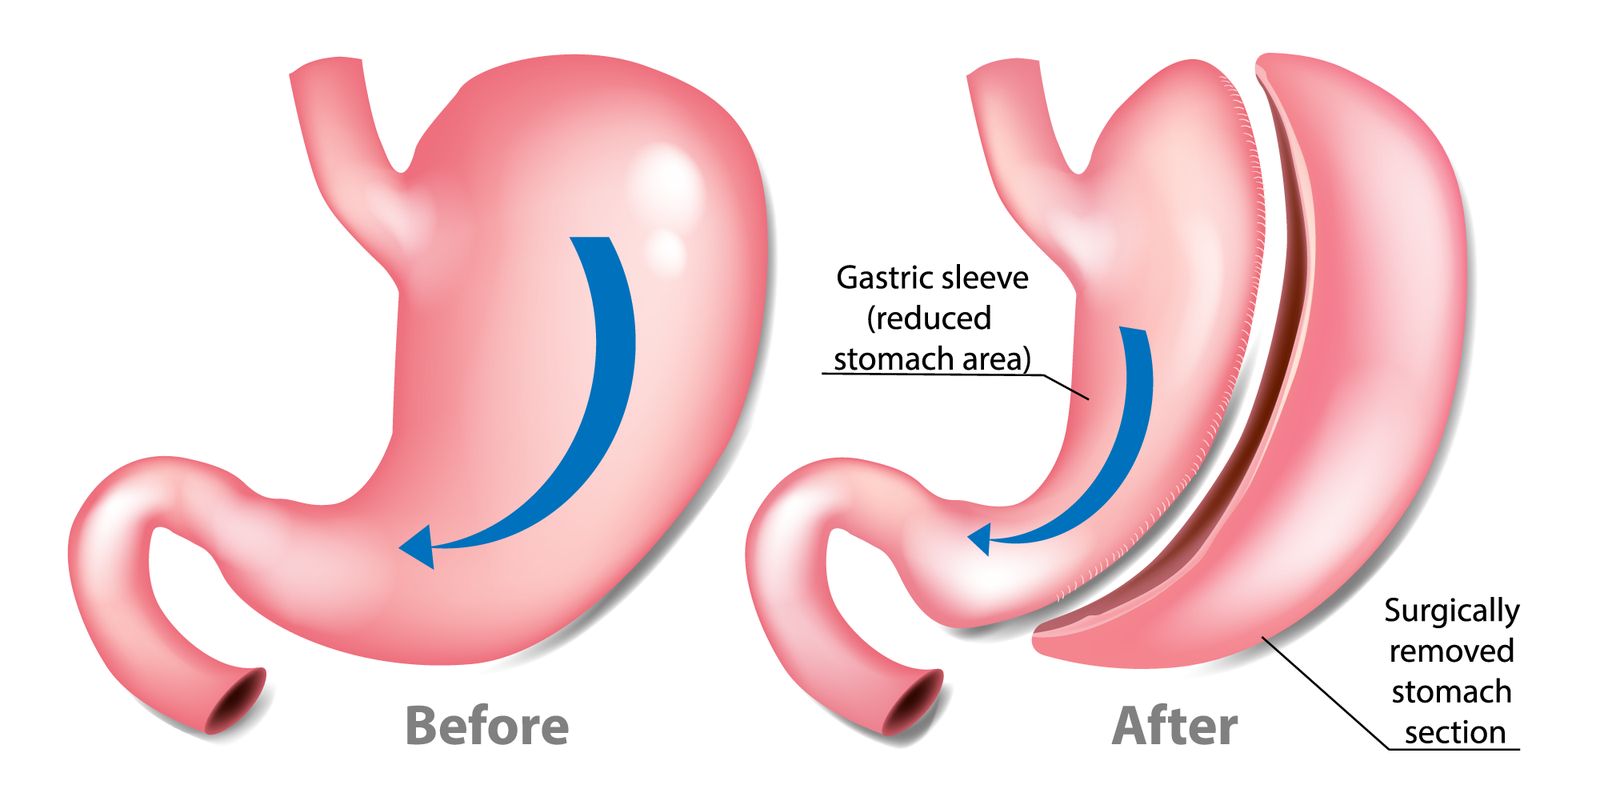 illustration of stomach before and after gastric sleeve